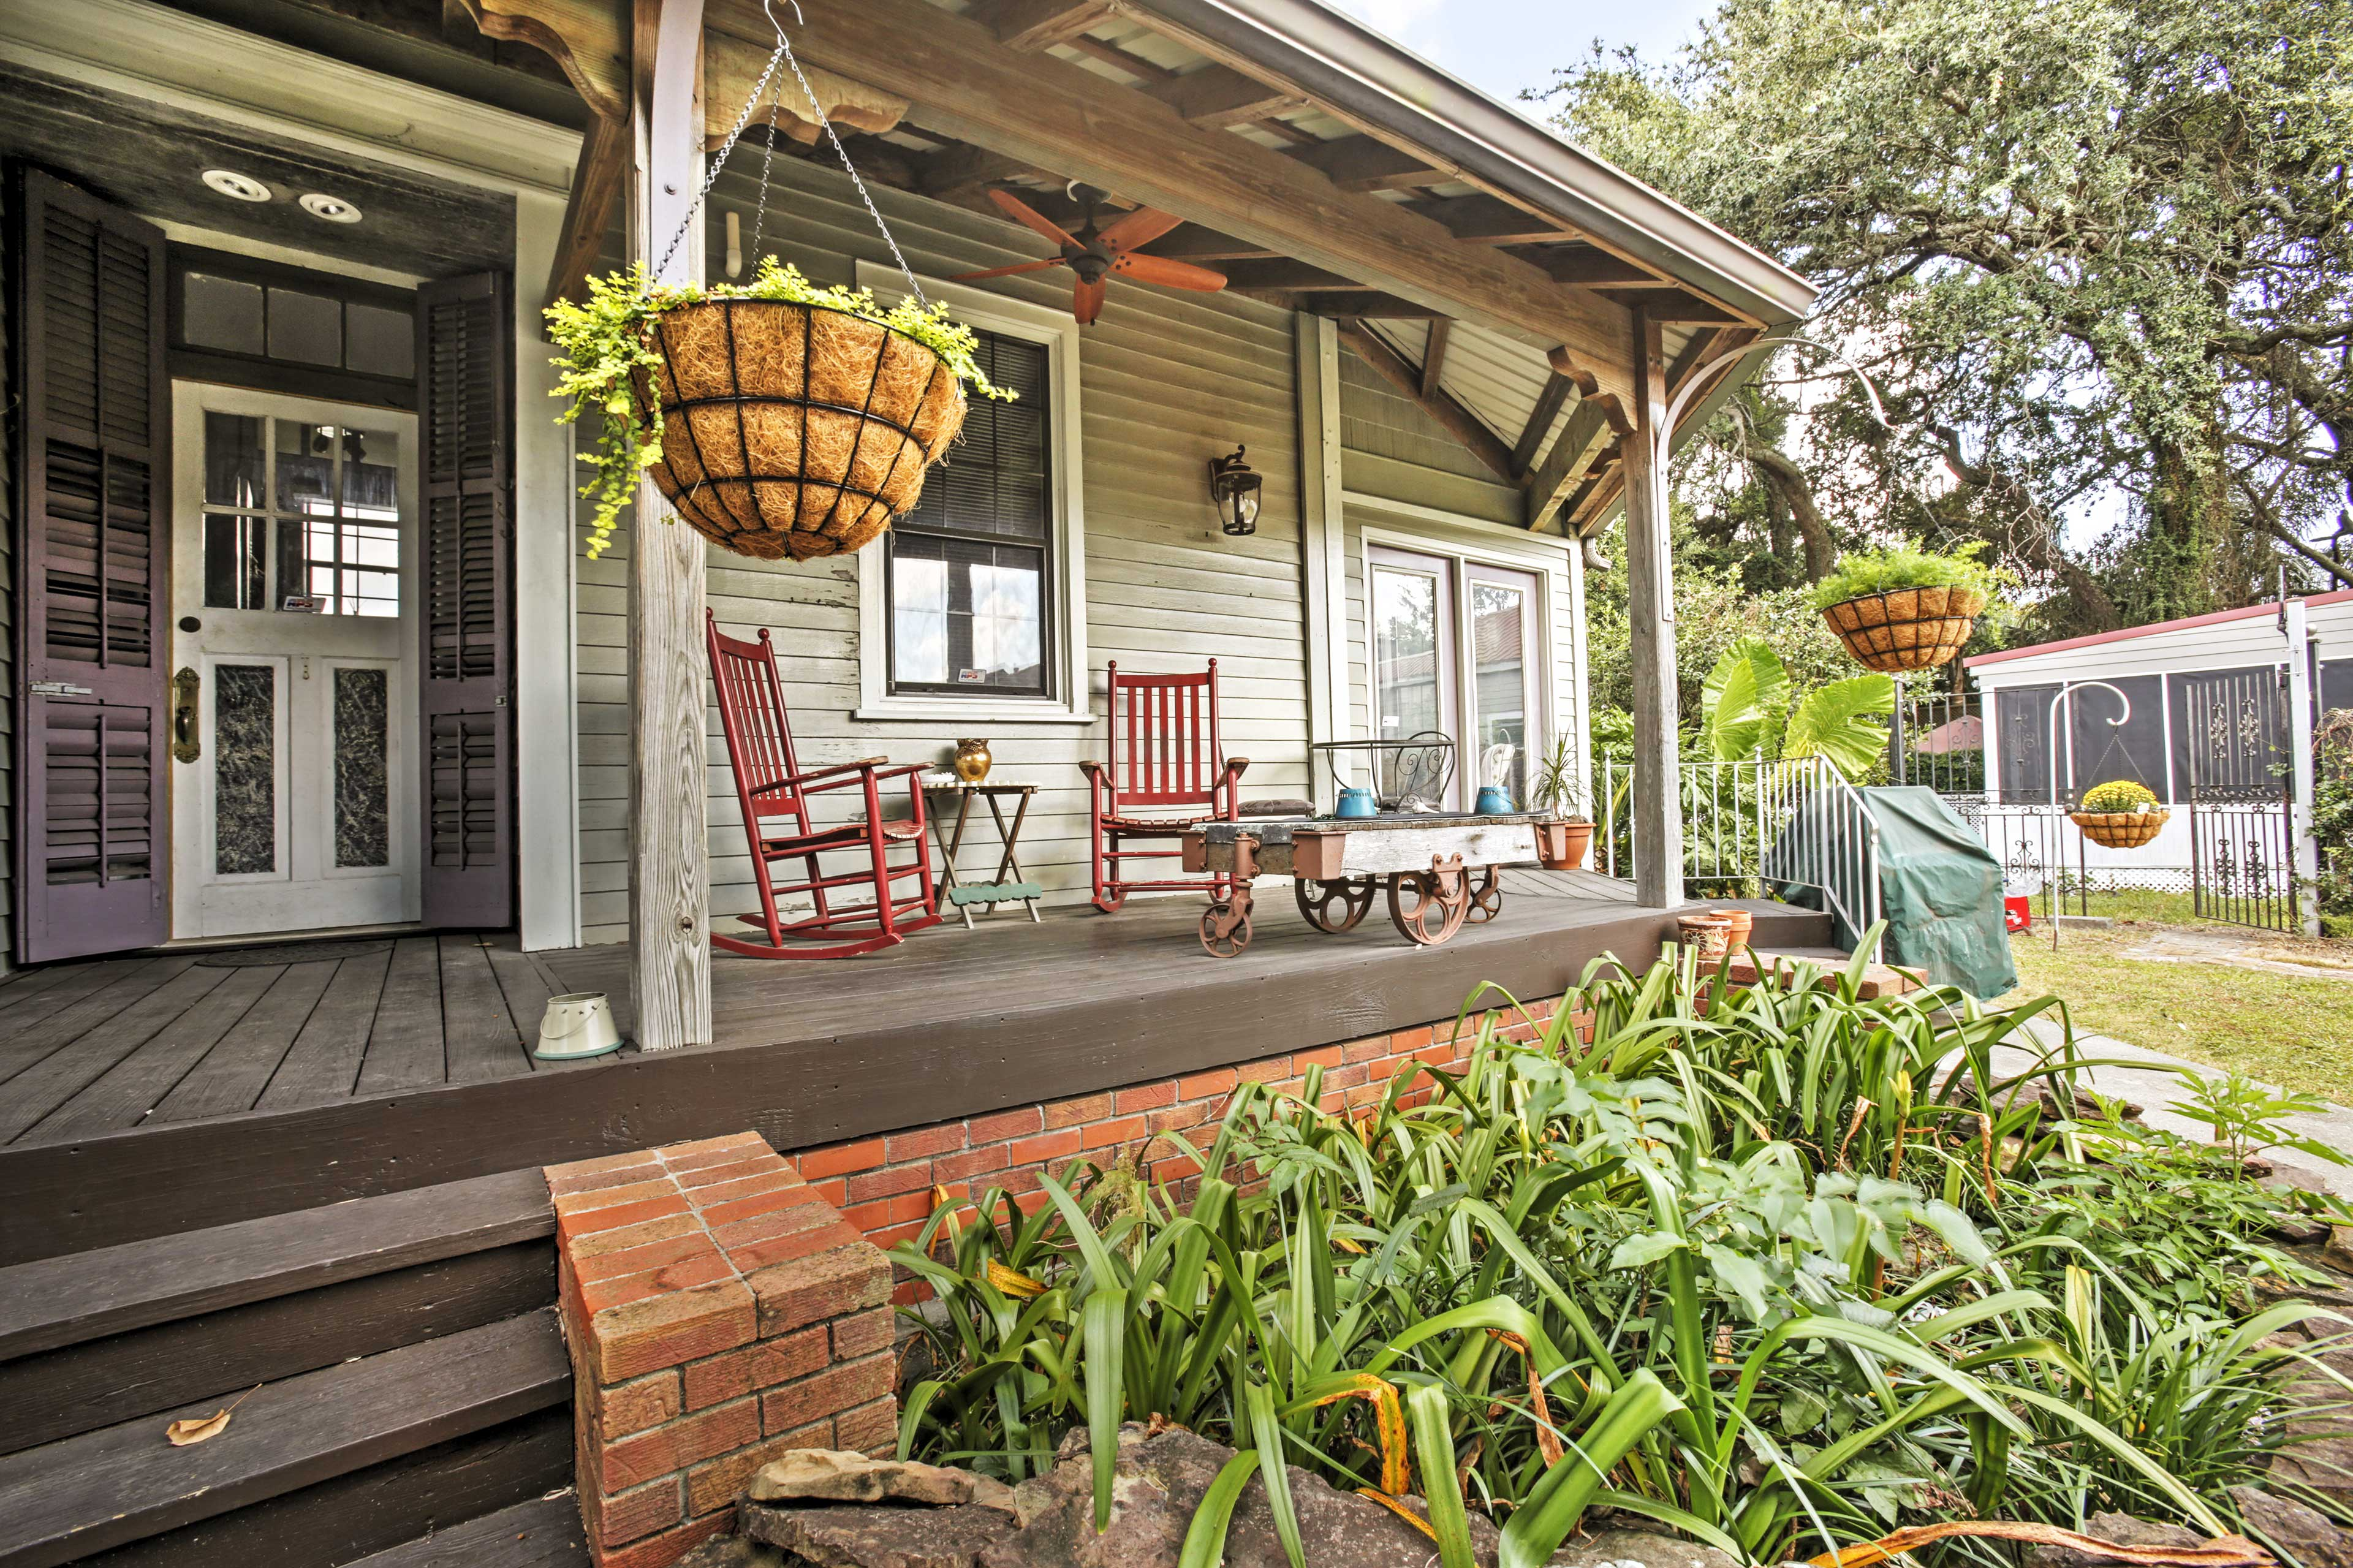 Find your NOLA state-of-mind as you relax under the shaded porch.